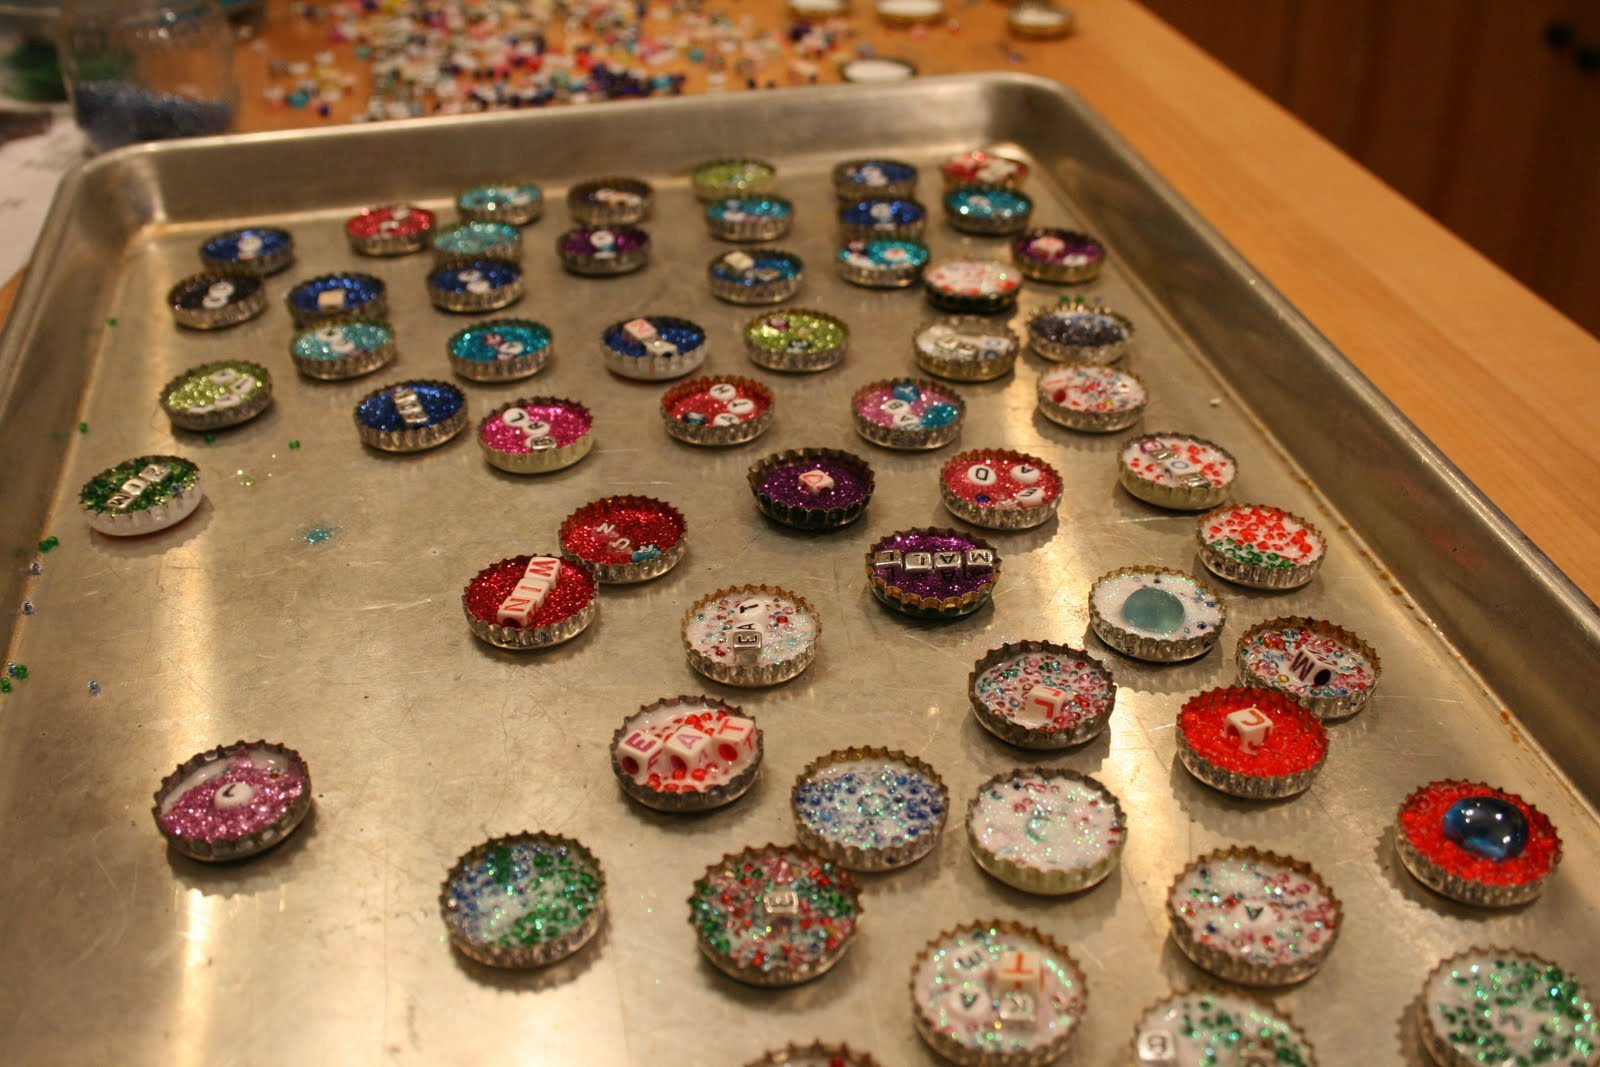 Cool beer bottle cap crafts ask home design for Crafts to do with beer bottle caps